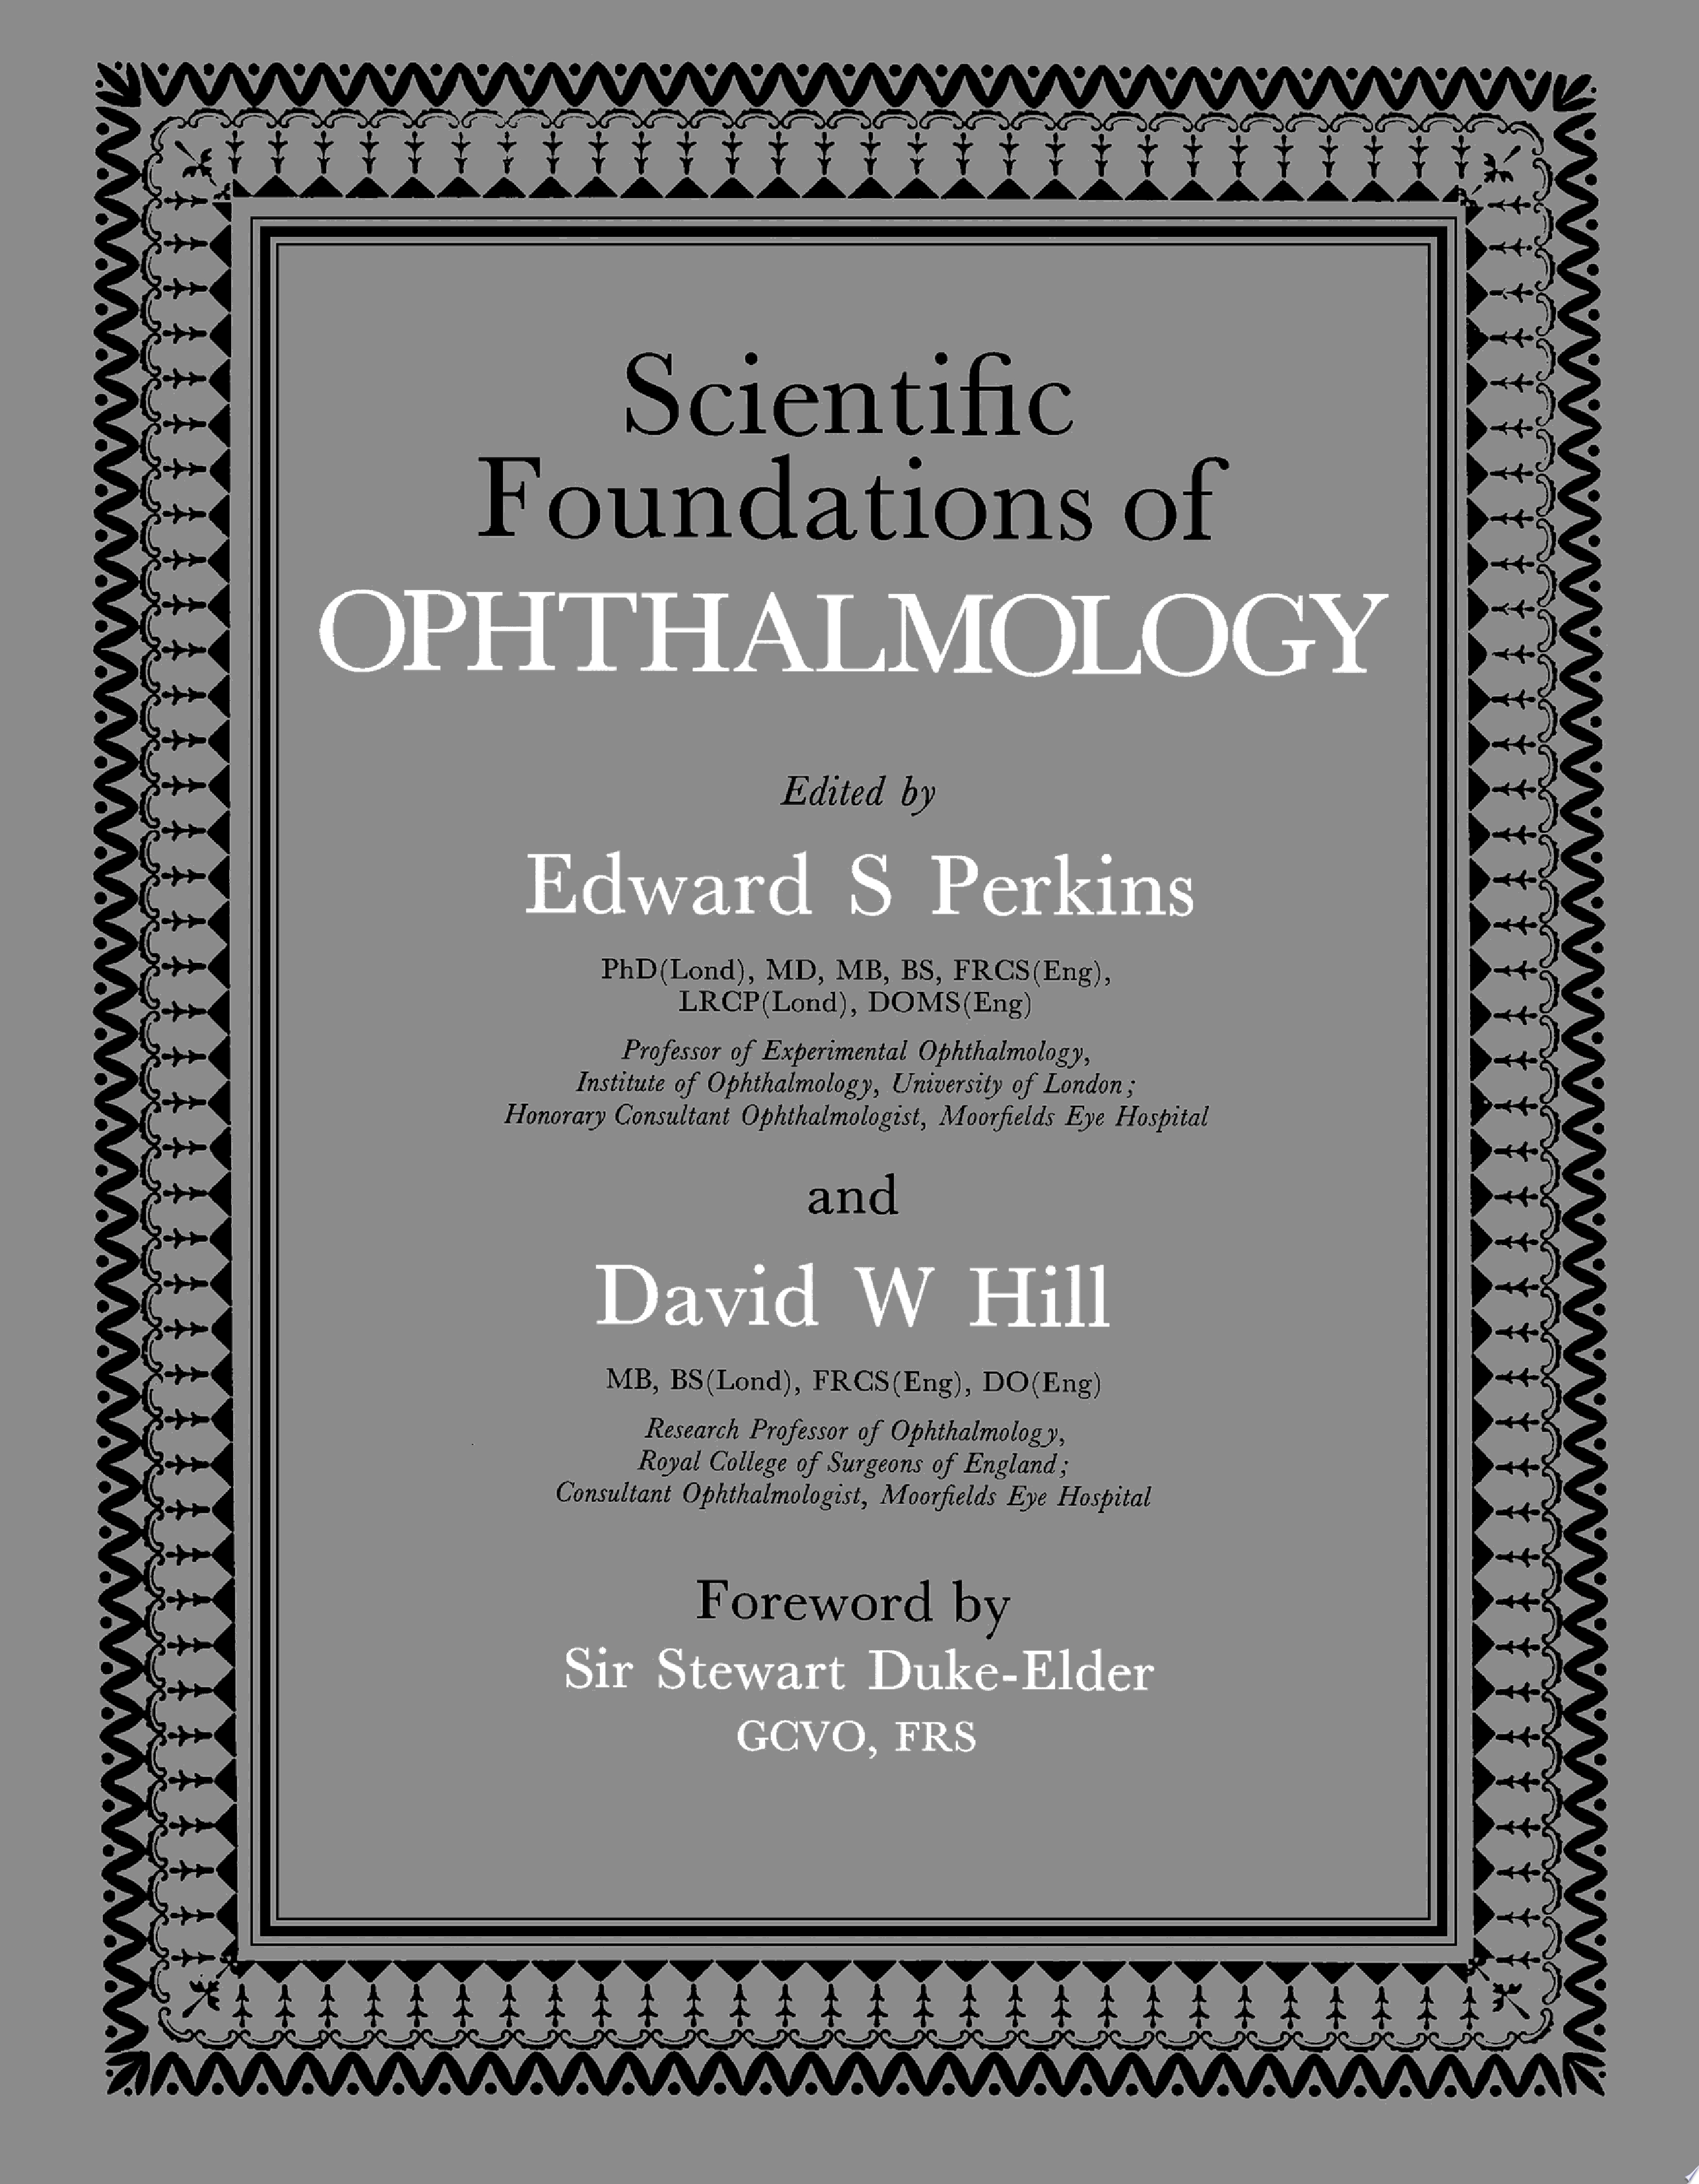 Scientific Foundations of Ophthalmology